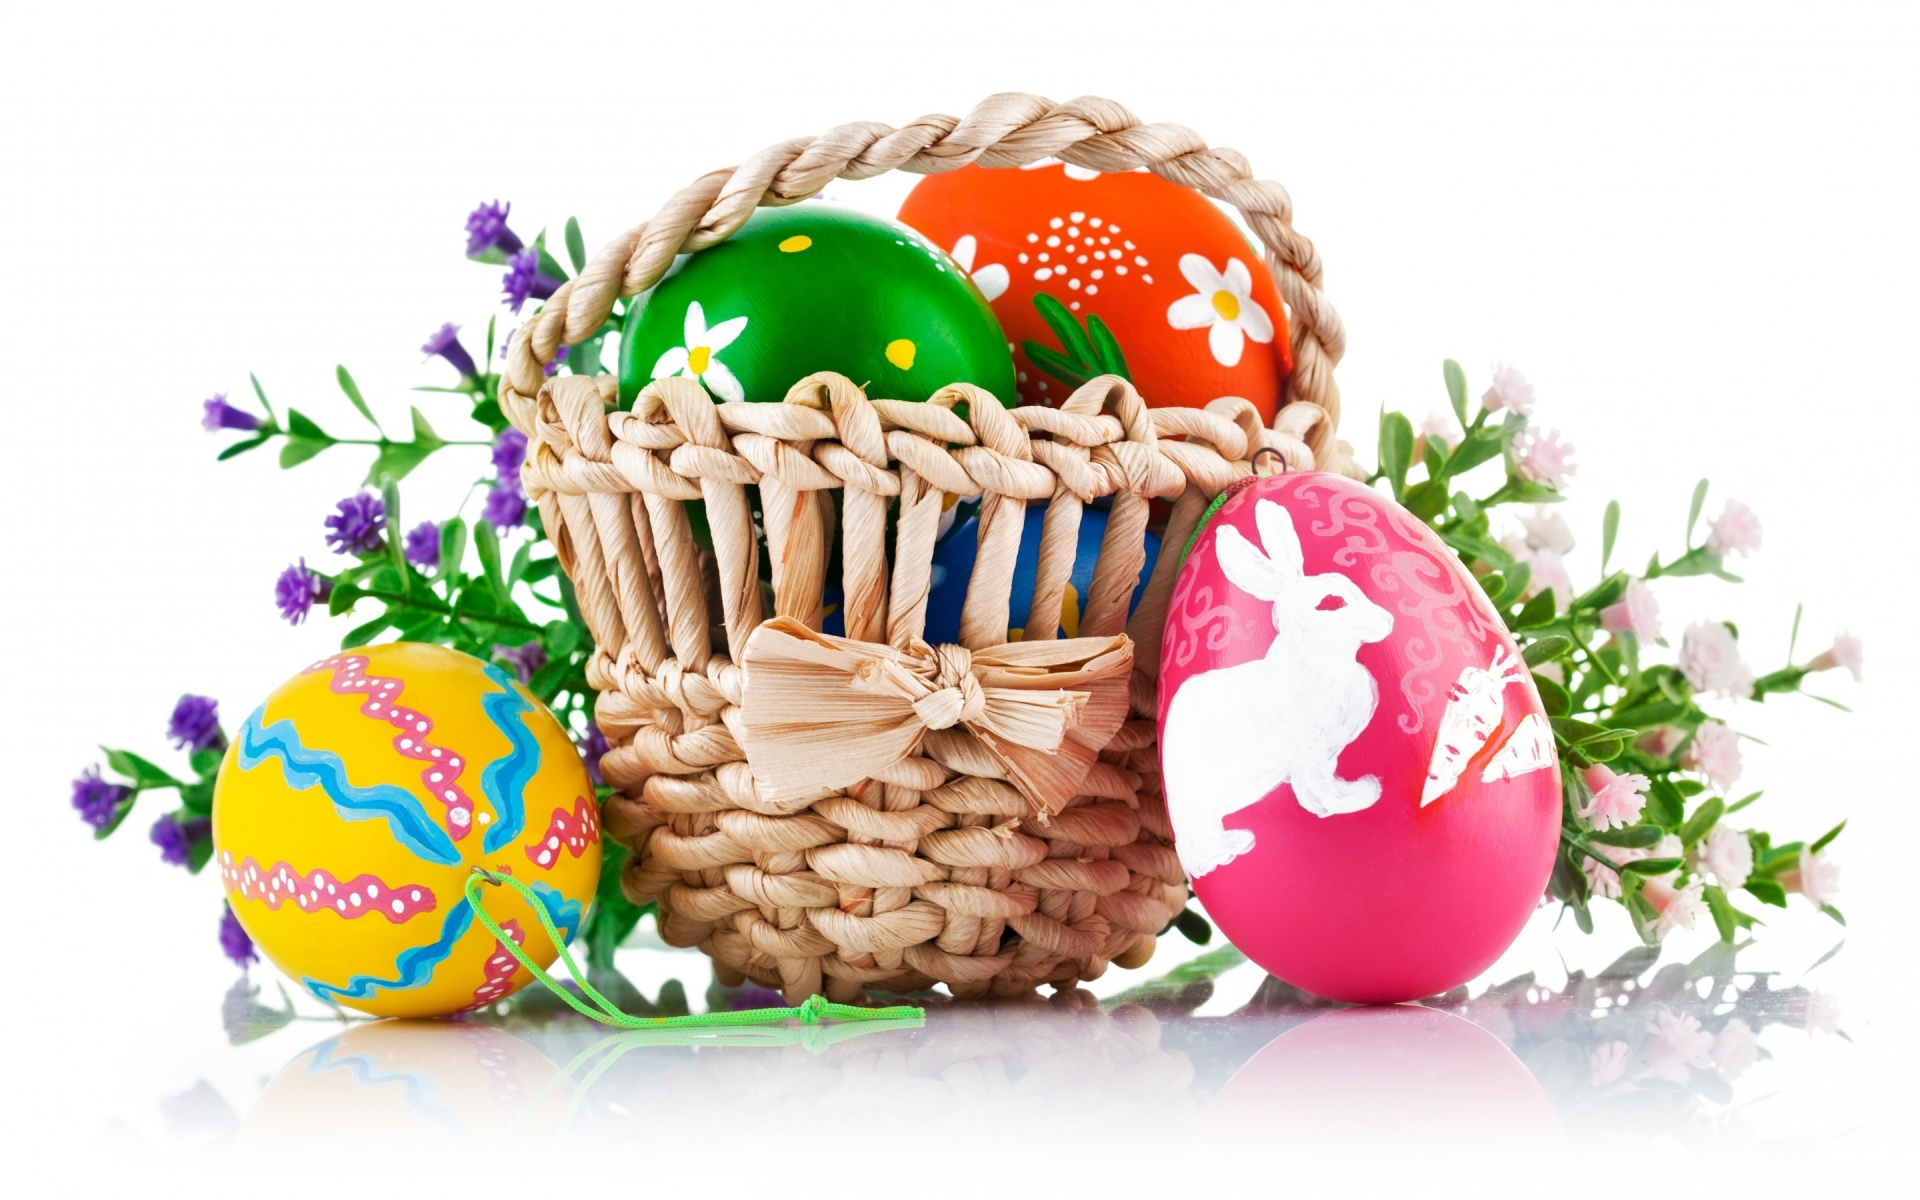 Easter Basket for 1920 x 1200 widescreen resolution